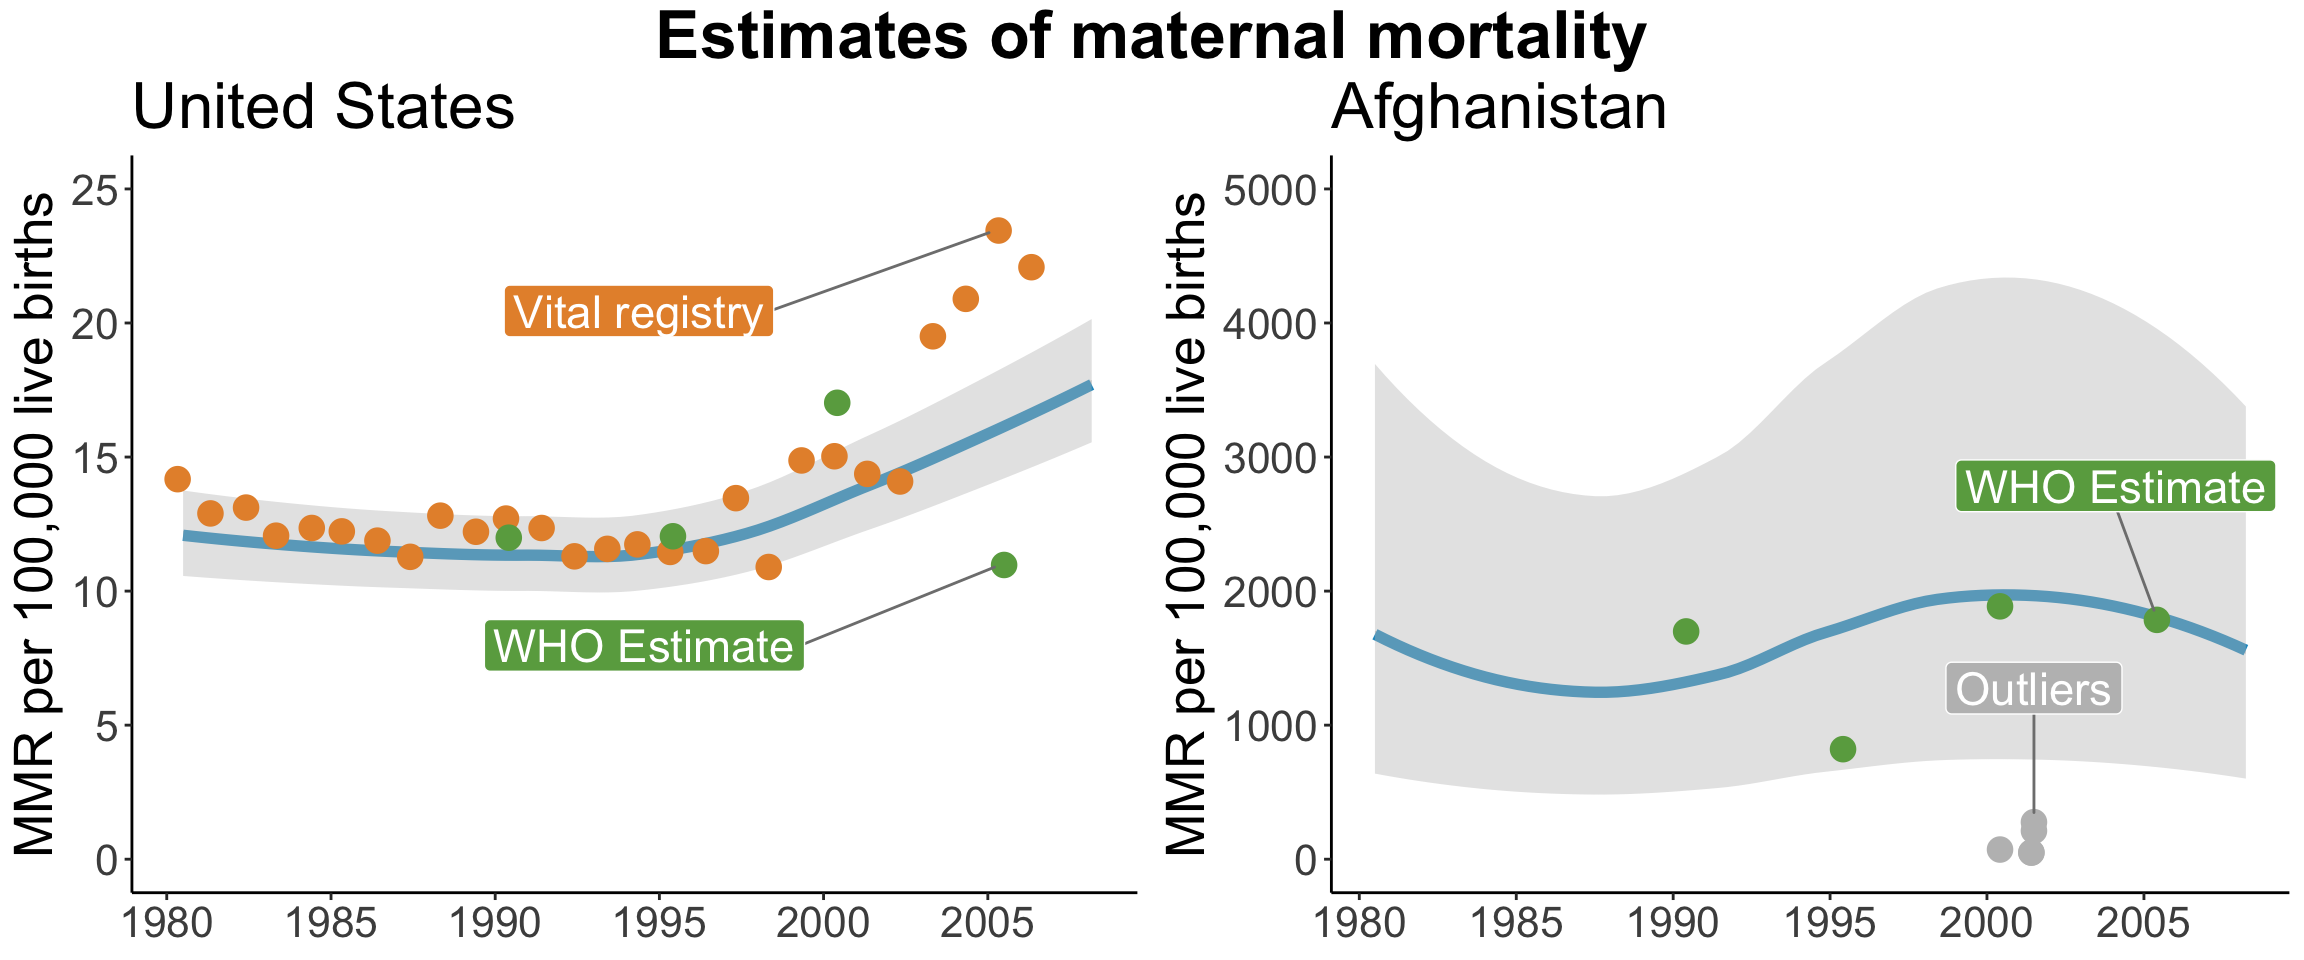 Estimates of the maternal mortality rate in the United States and Afghanistan, [@hogan:2010]. Visualized by Yours Truly based on values extracted from published plots.